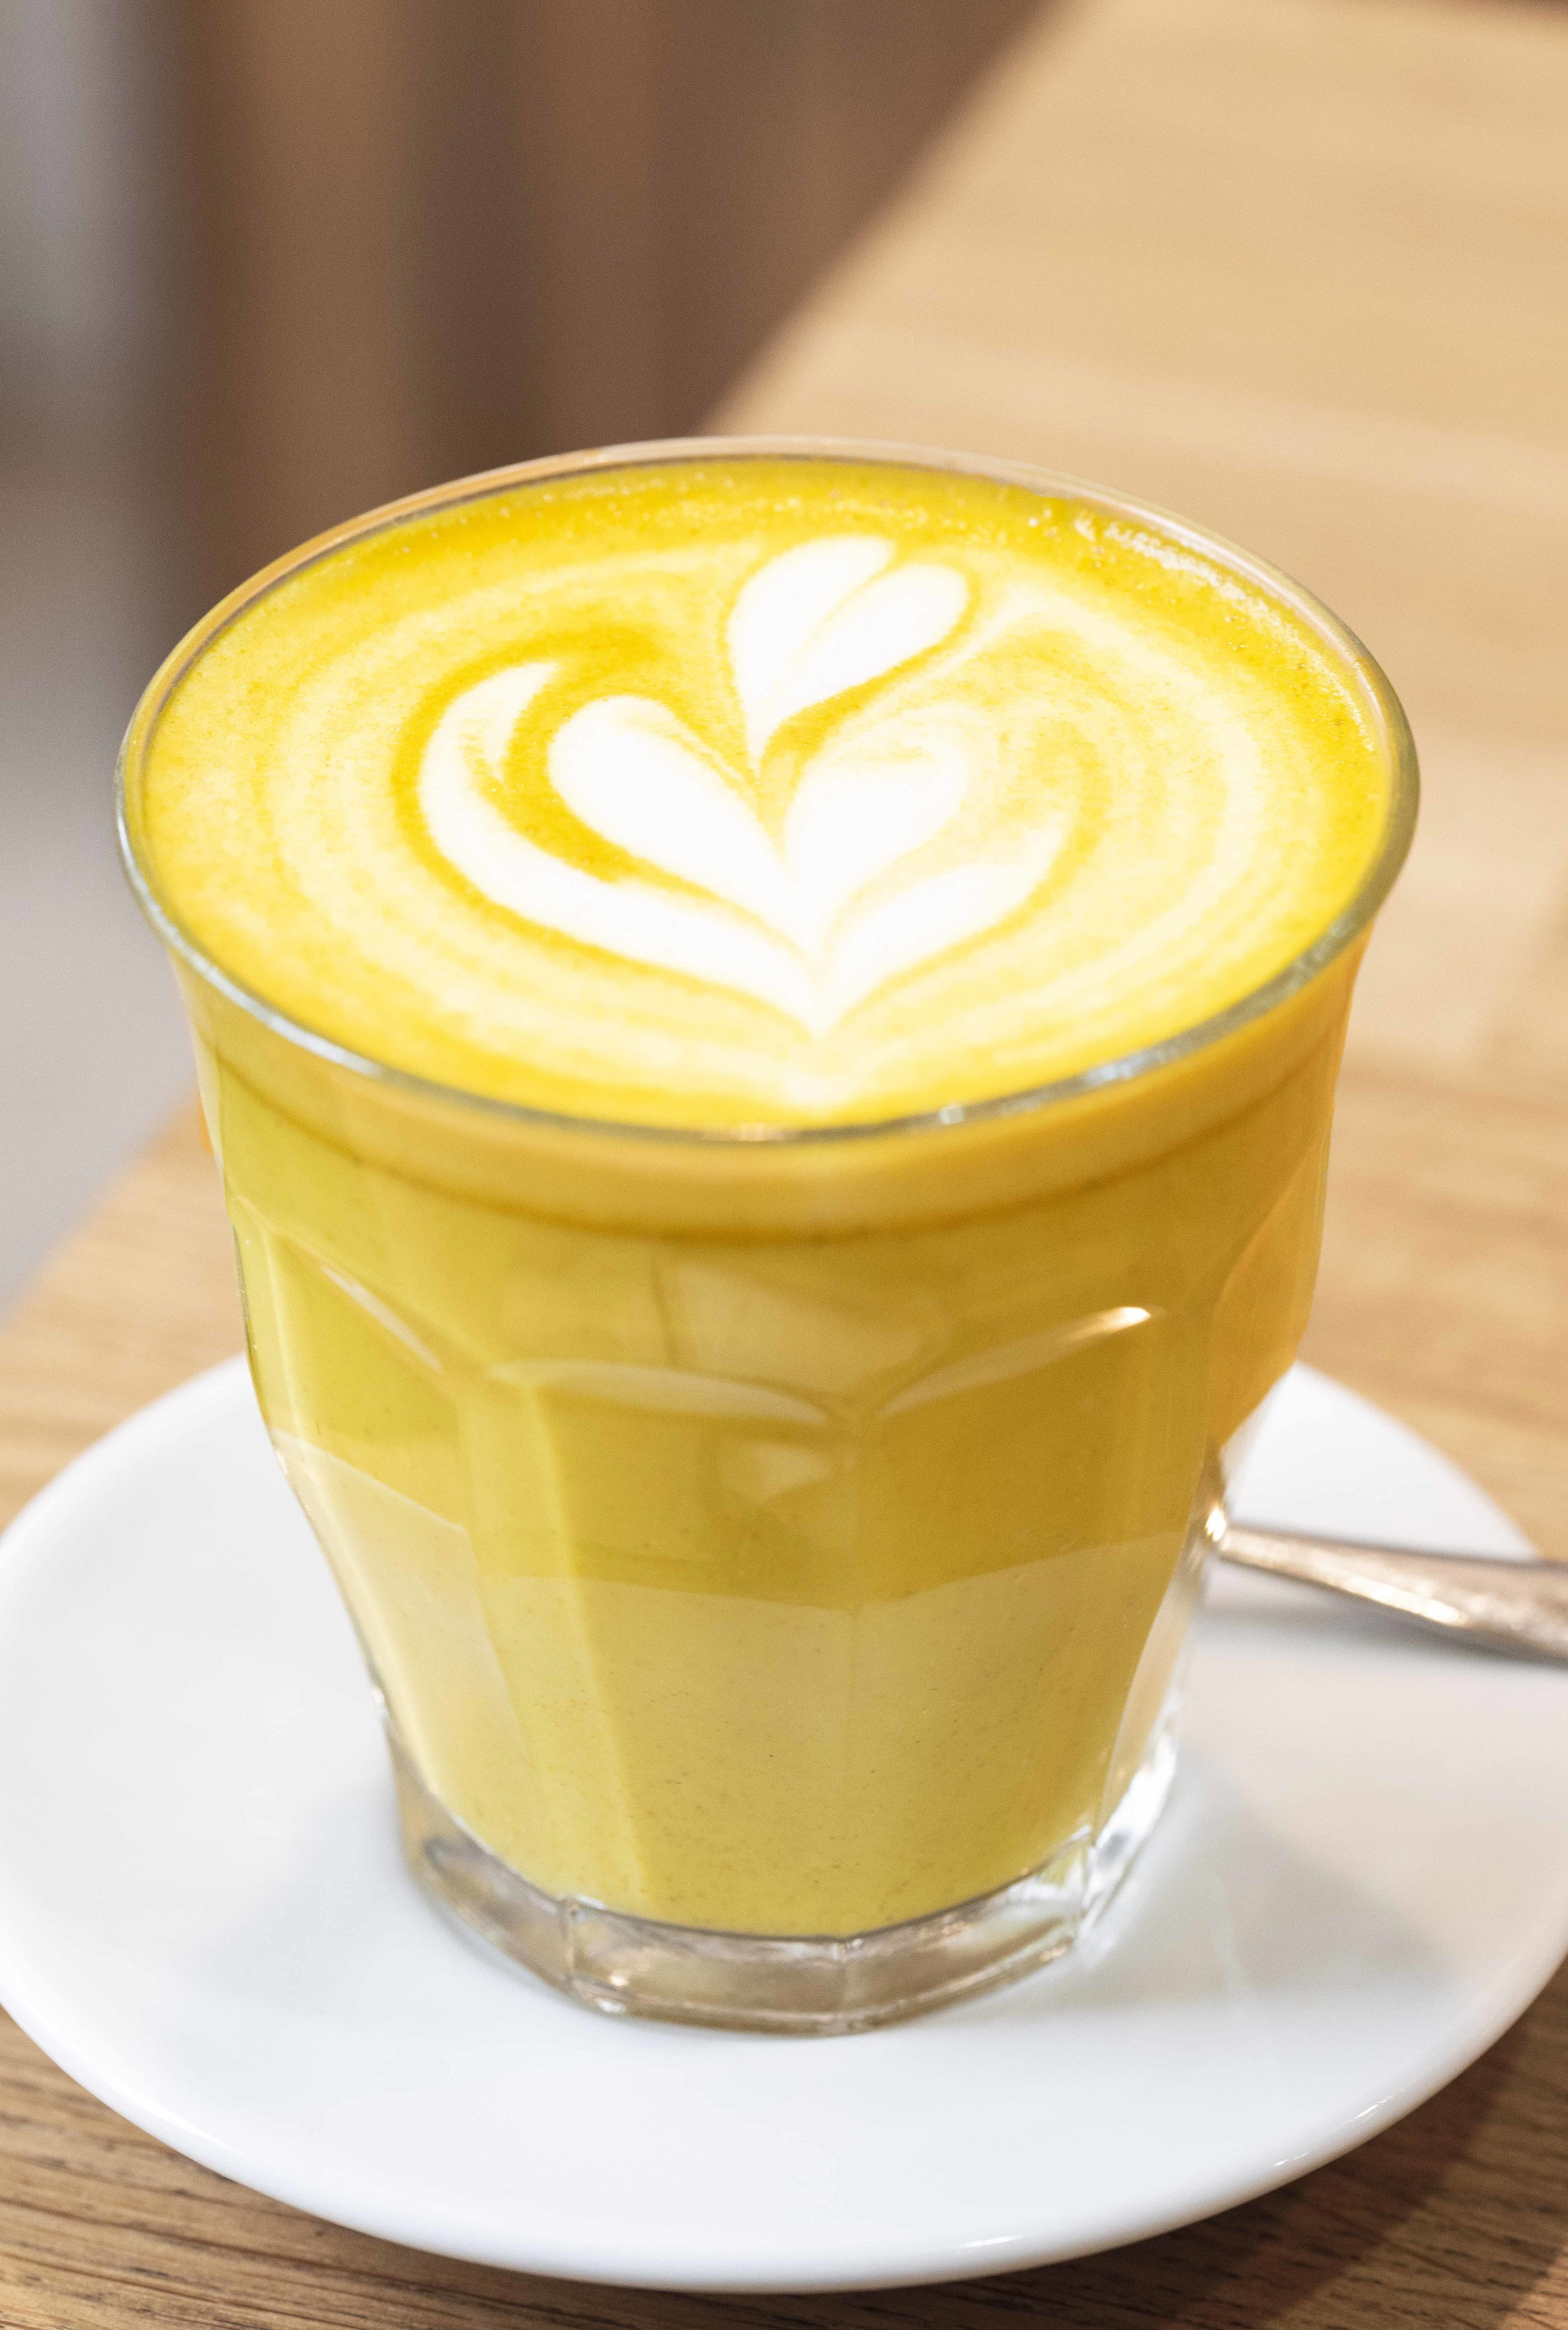 Turmeric Latte at Equilibrium Cafe, Barcelona. Photo © Barcelona Food Experience.